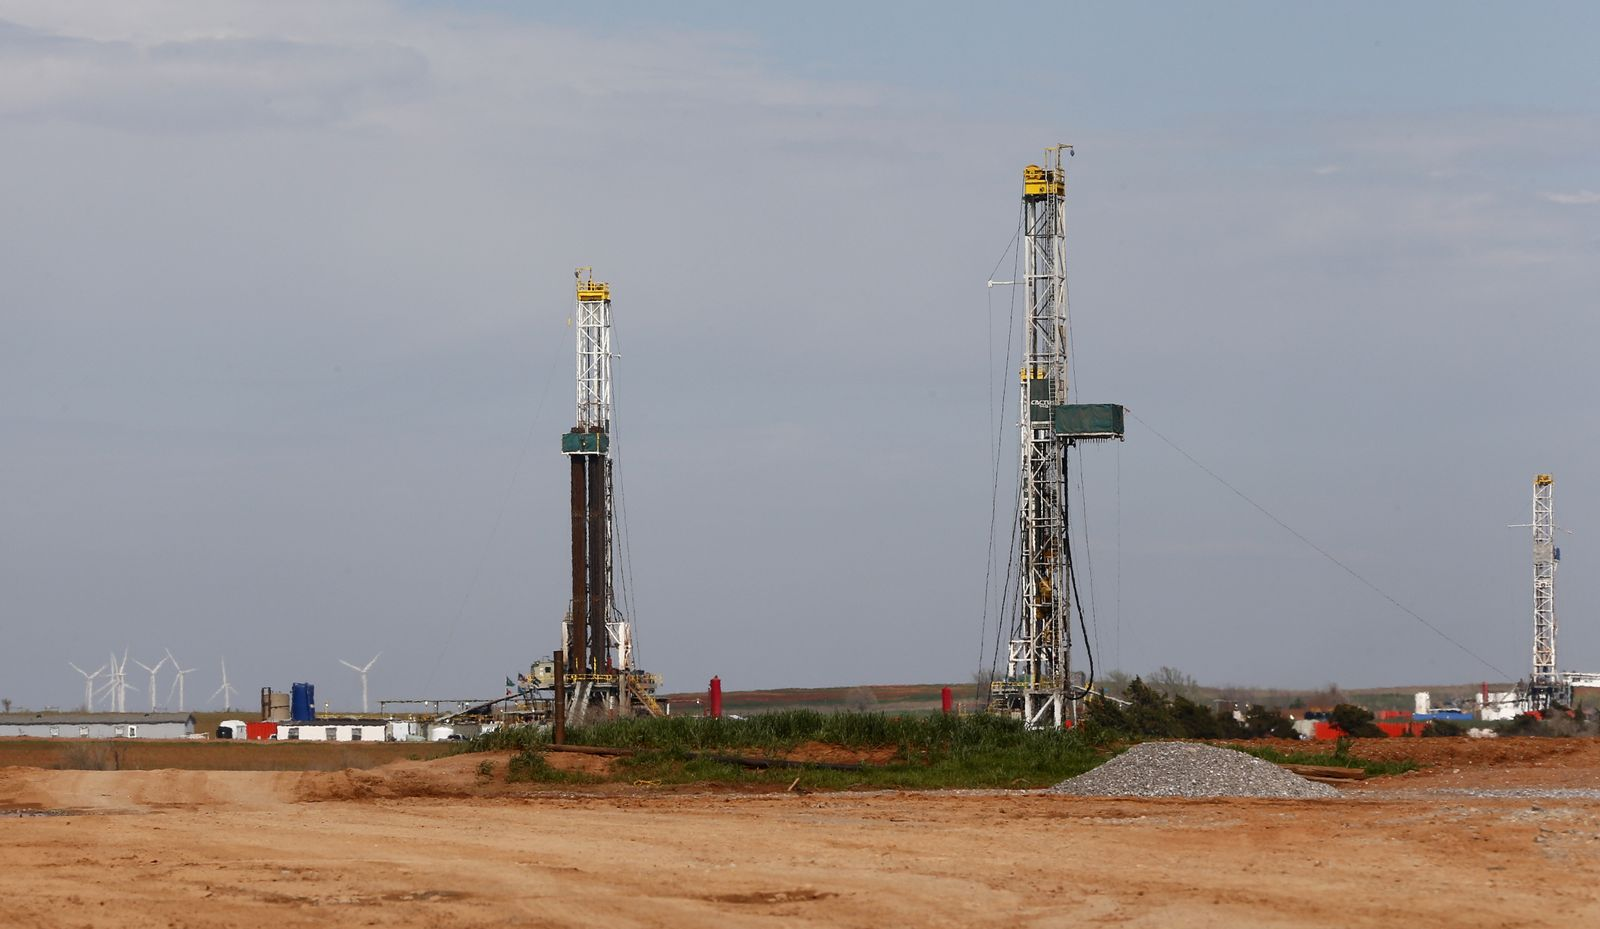 Oklahoma / oil drilling / fracking